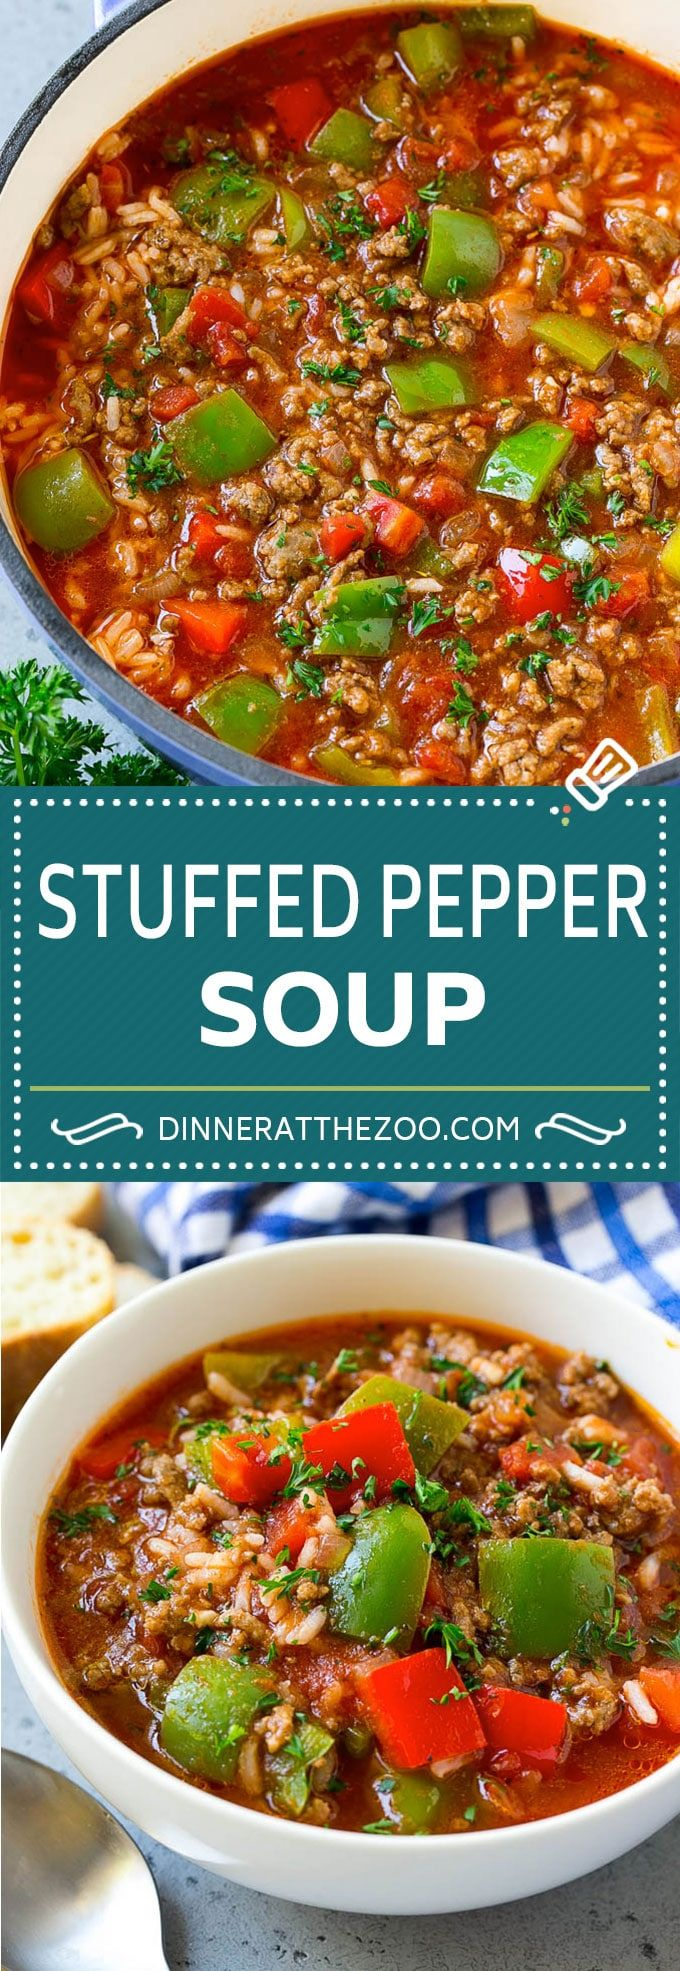 Stuffed Pepper Soup Recipe  Beef and Rice Soup  Stuffed Peppers